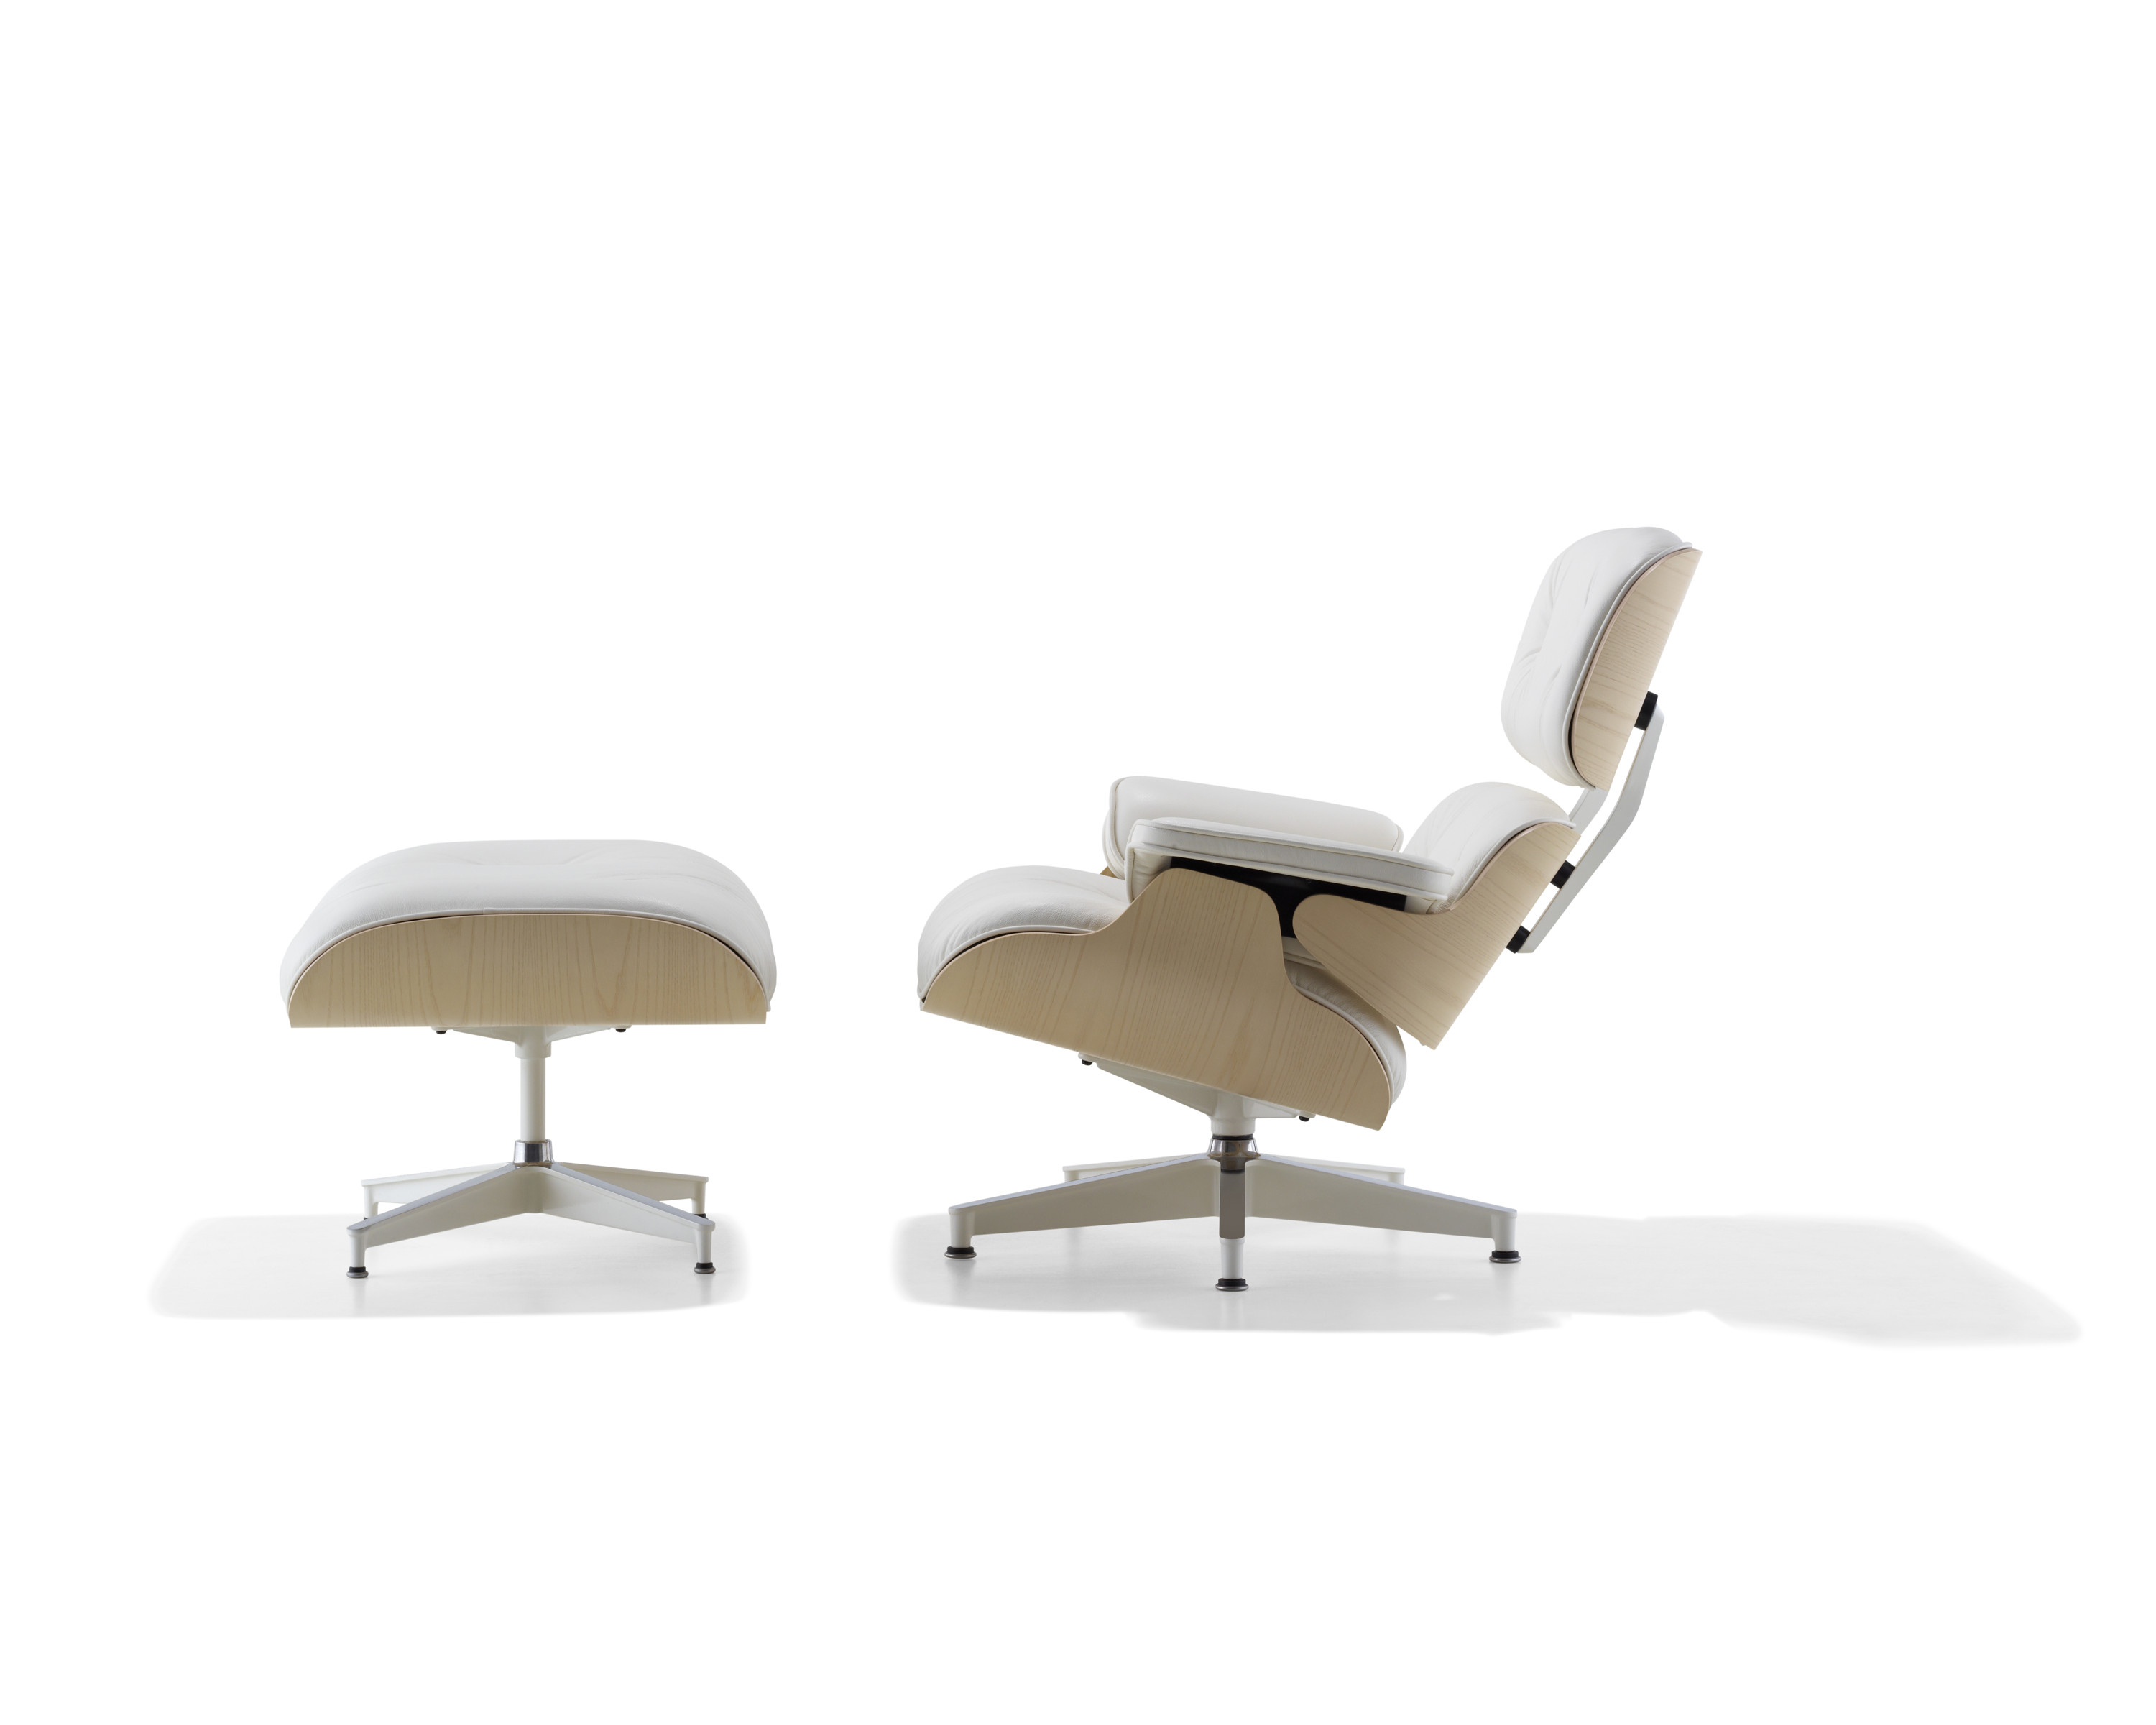 the eames lounge chair ebonized architects and artisans